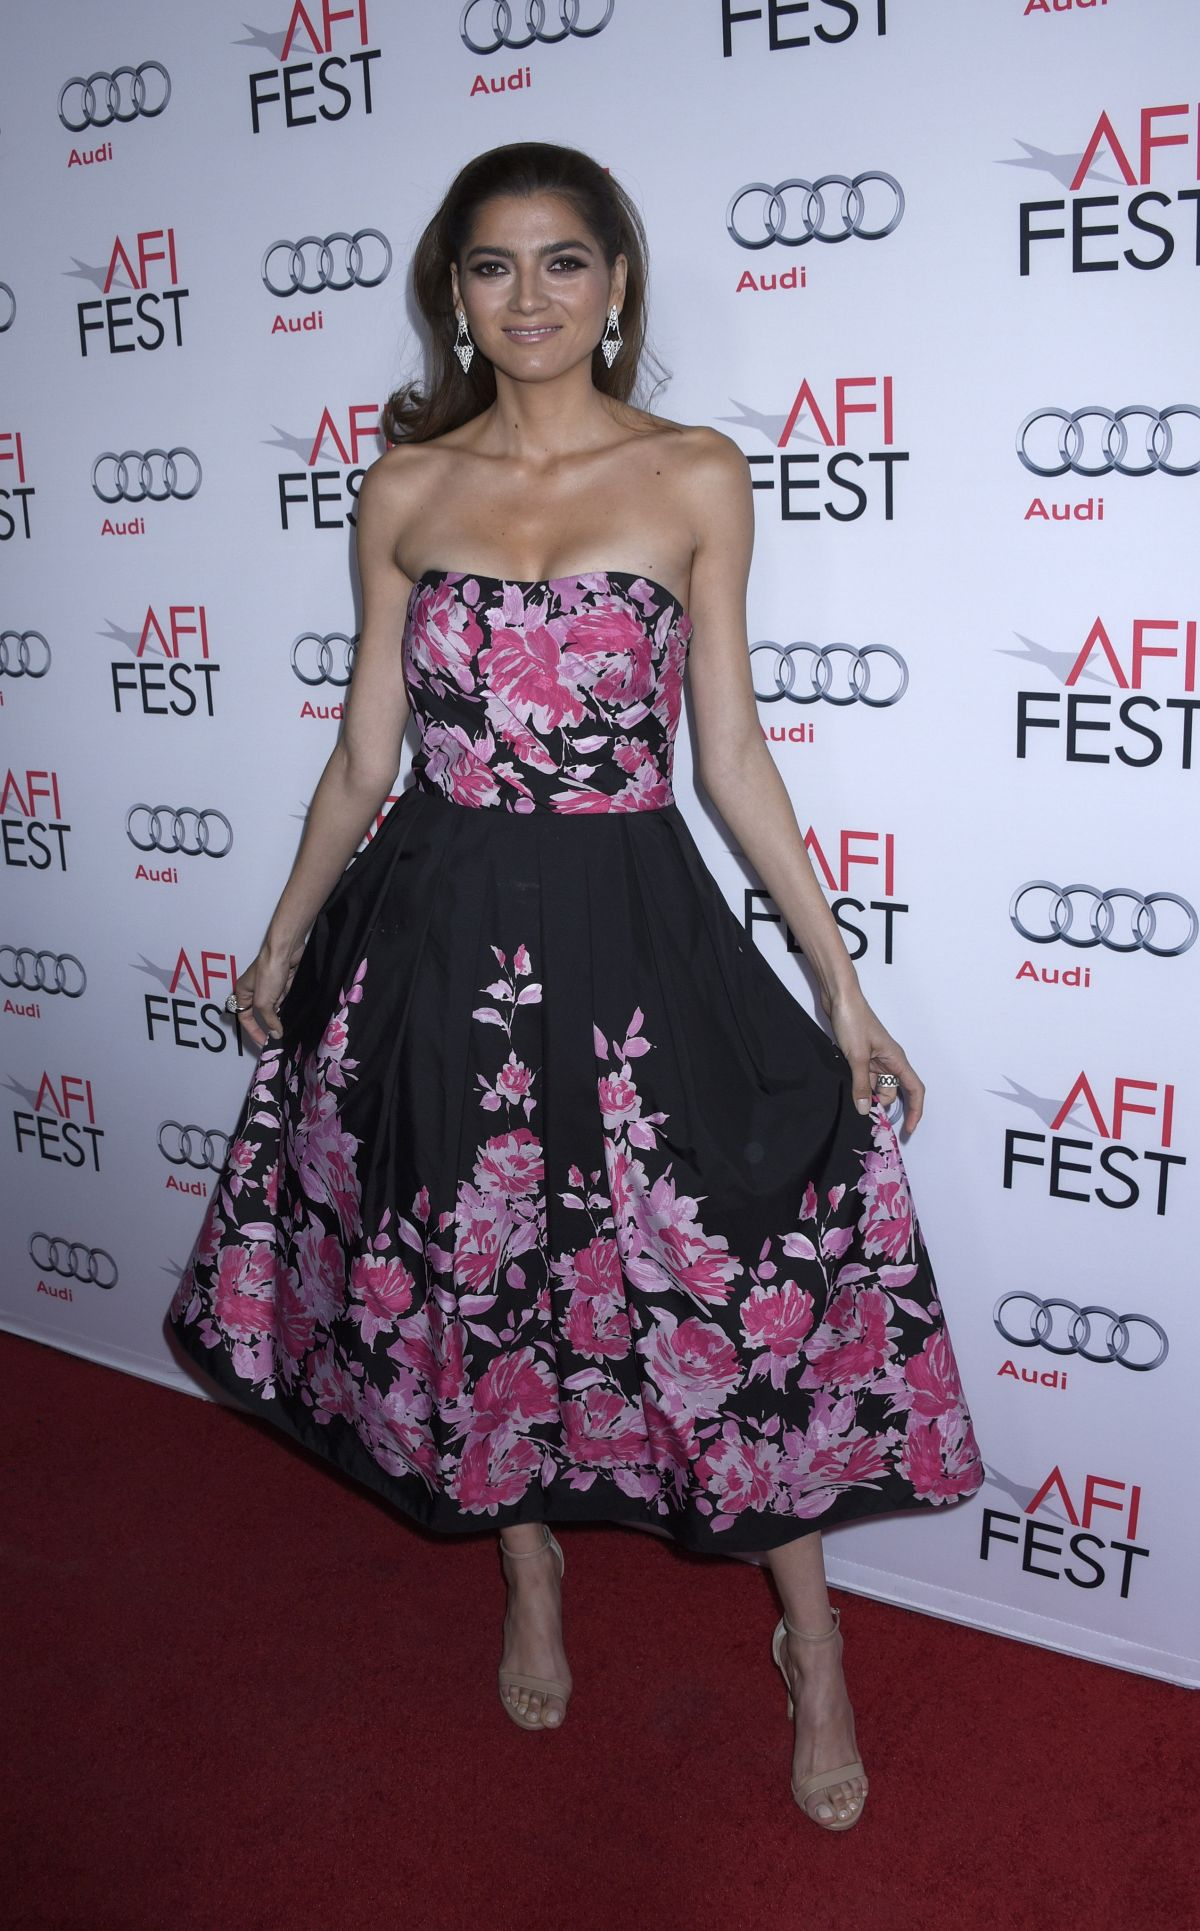 BLANCA BLANCO at AFI Fest 2015 Centerpiece Gala in Hollywood 11/07/2015